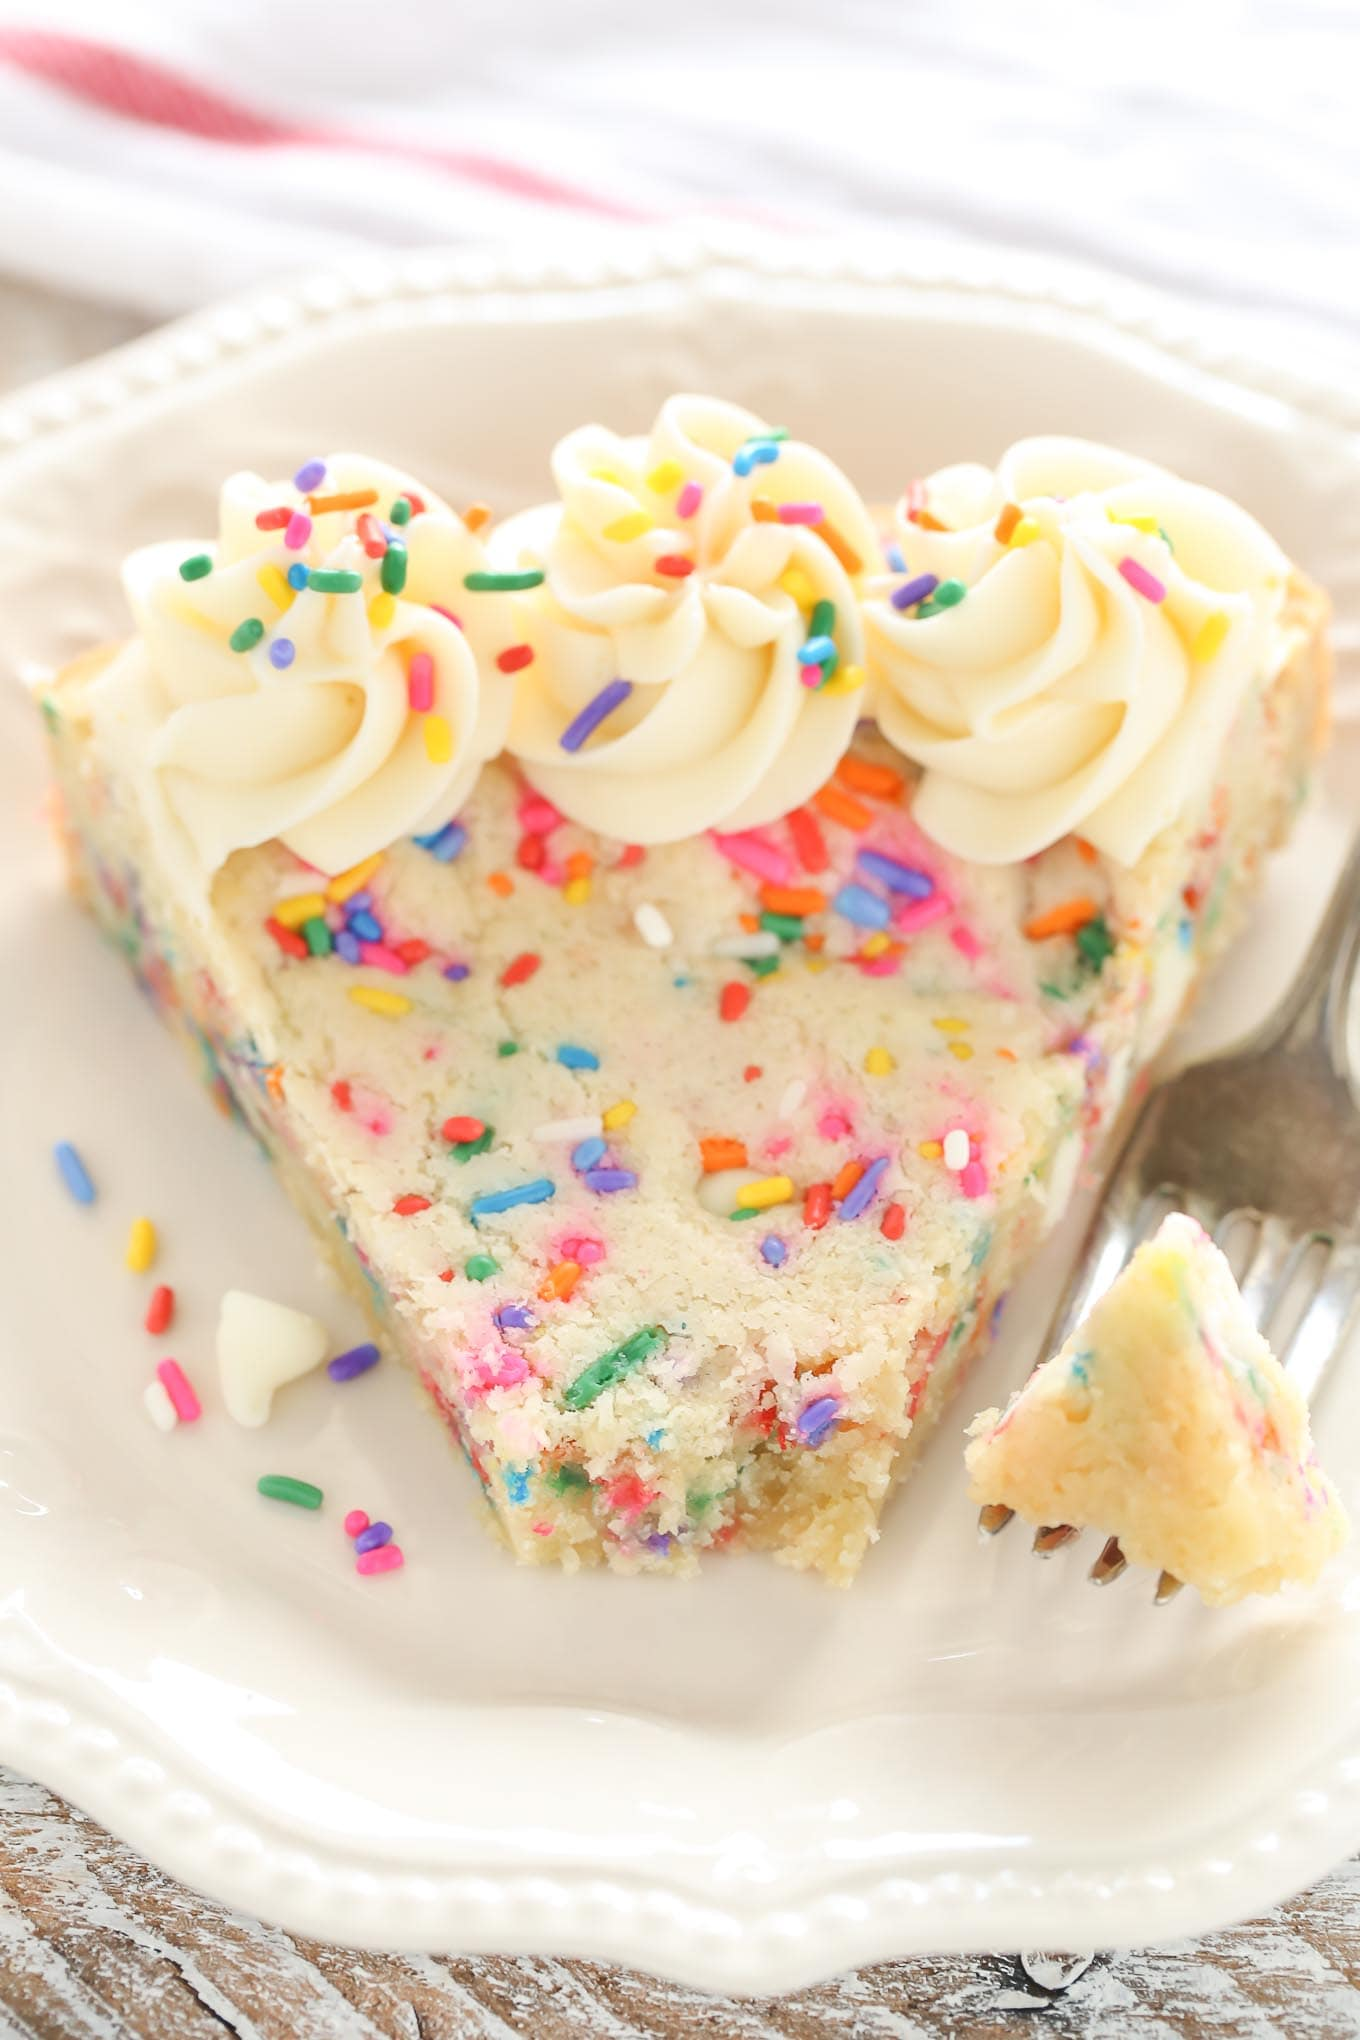 A sugar cookie cake with sprinkles, white chocolate chips, and topped with a homemade vanilla frosting.  This Funfetti Sugar Cookie Cake is easy to make and a perfect dessert for any occasion!